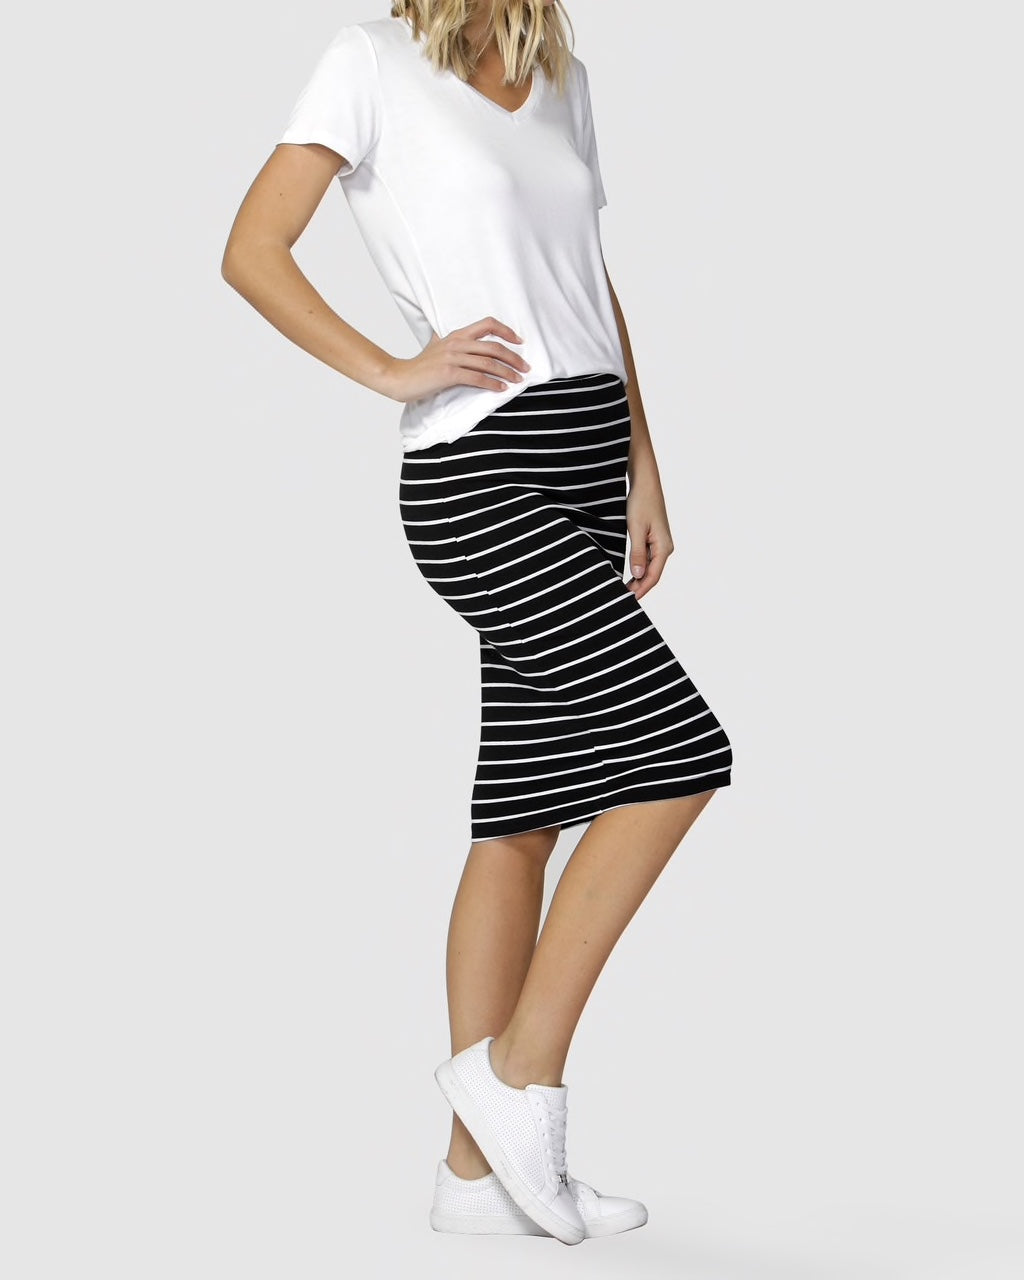 Betty Basics Alicia Skirt. Black & White. New Zealand. Casual wear.